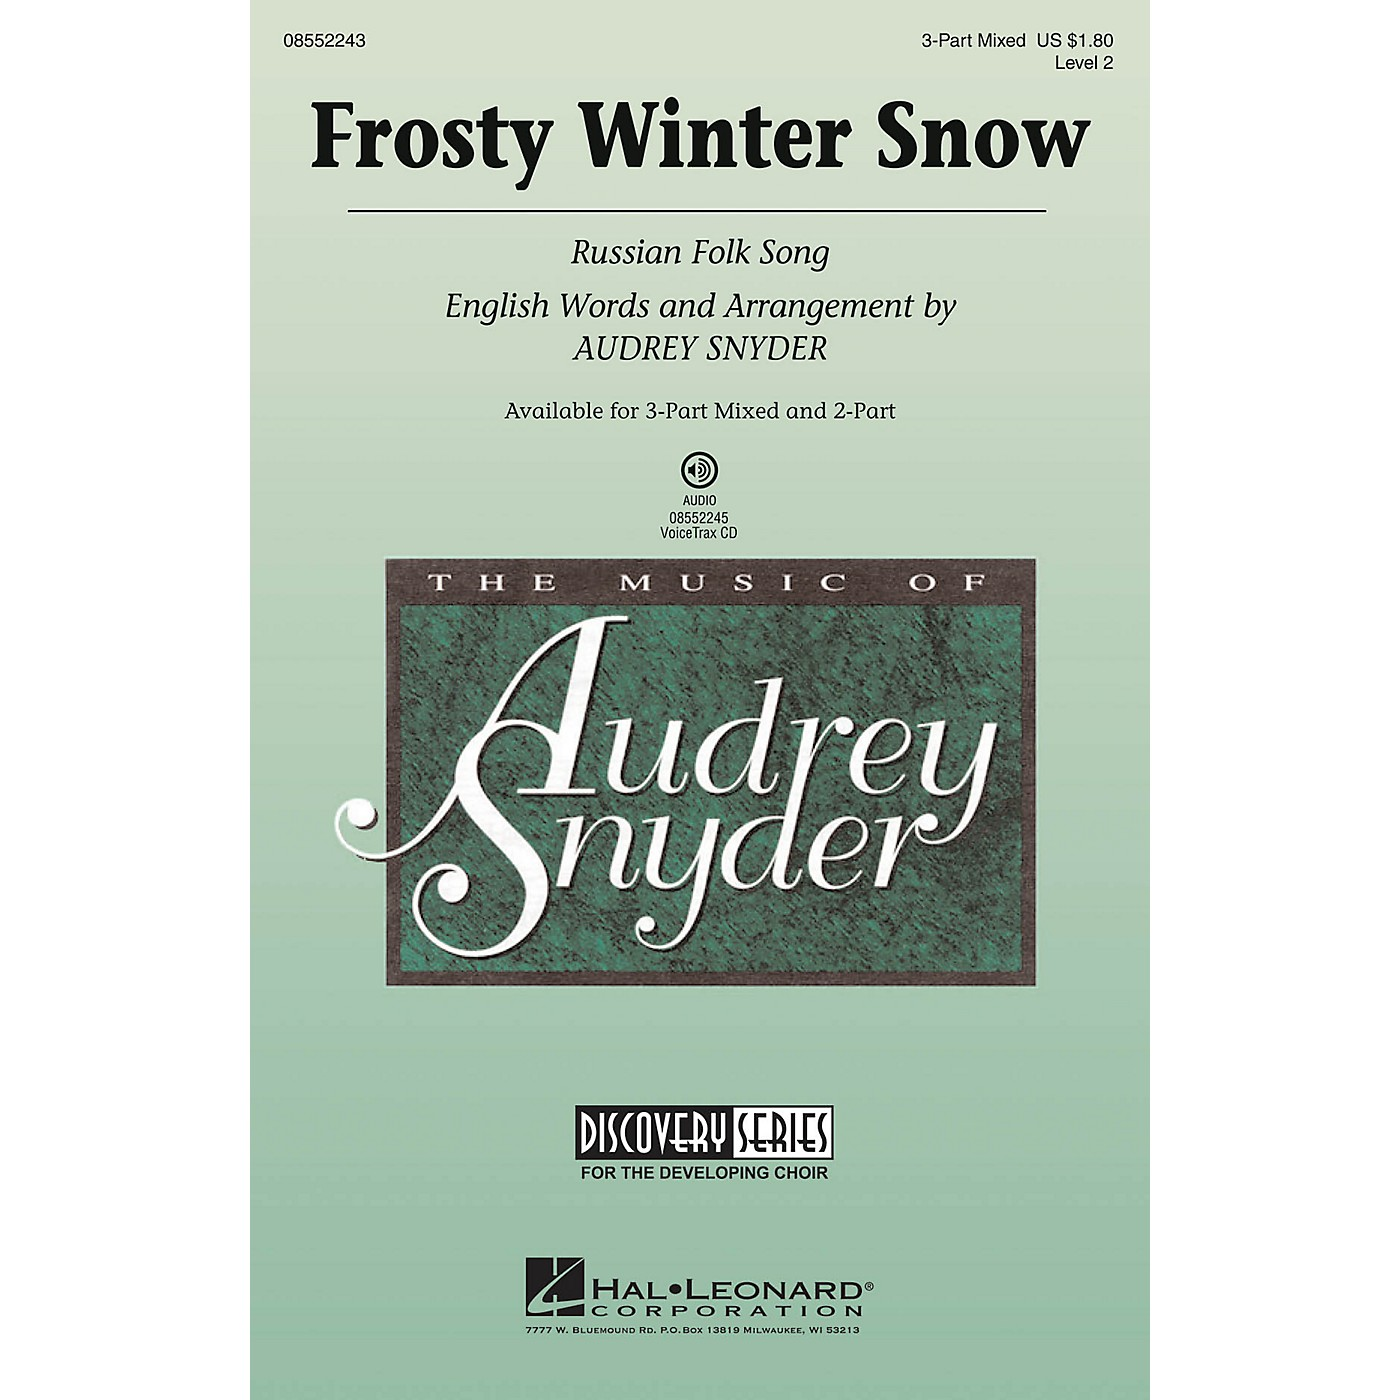 Hal Leonard Frosty Winter Snow (Russian Folk Song) Discovery Level 2 2-Part Arranged by Audrey Snyder thumbnail